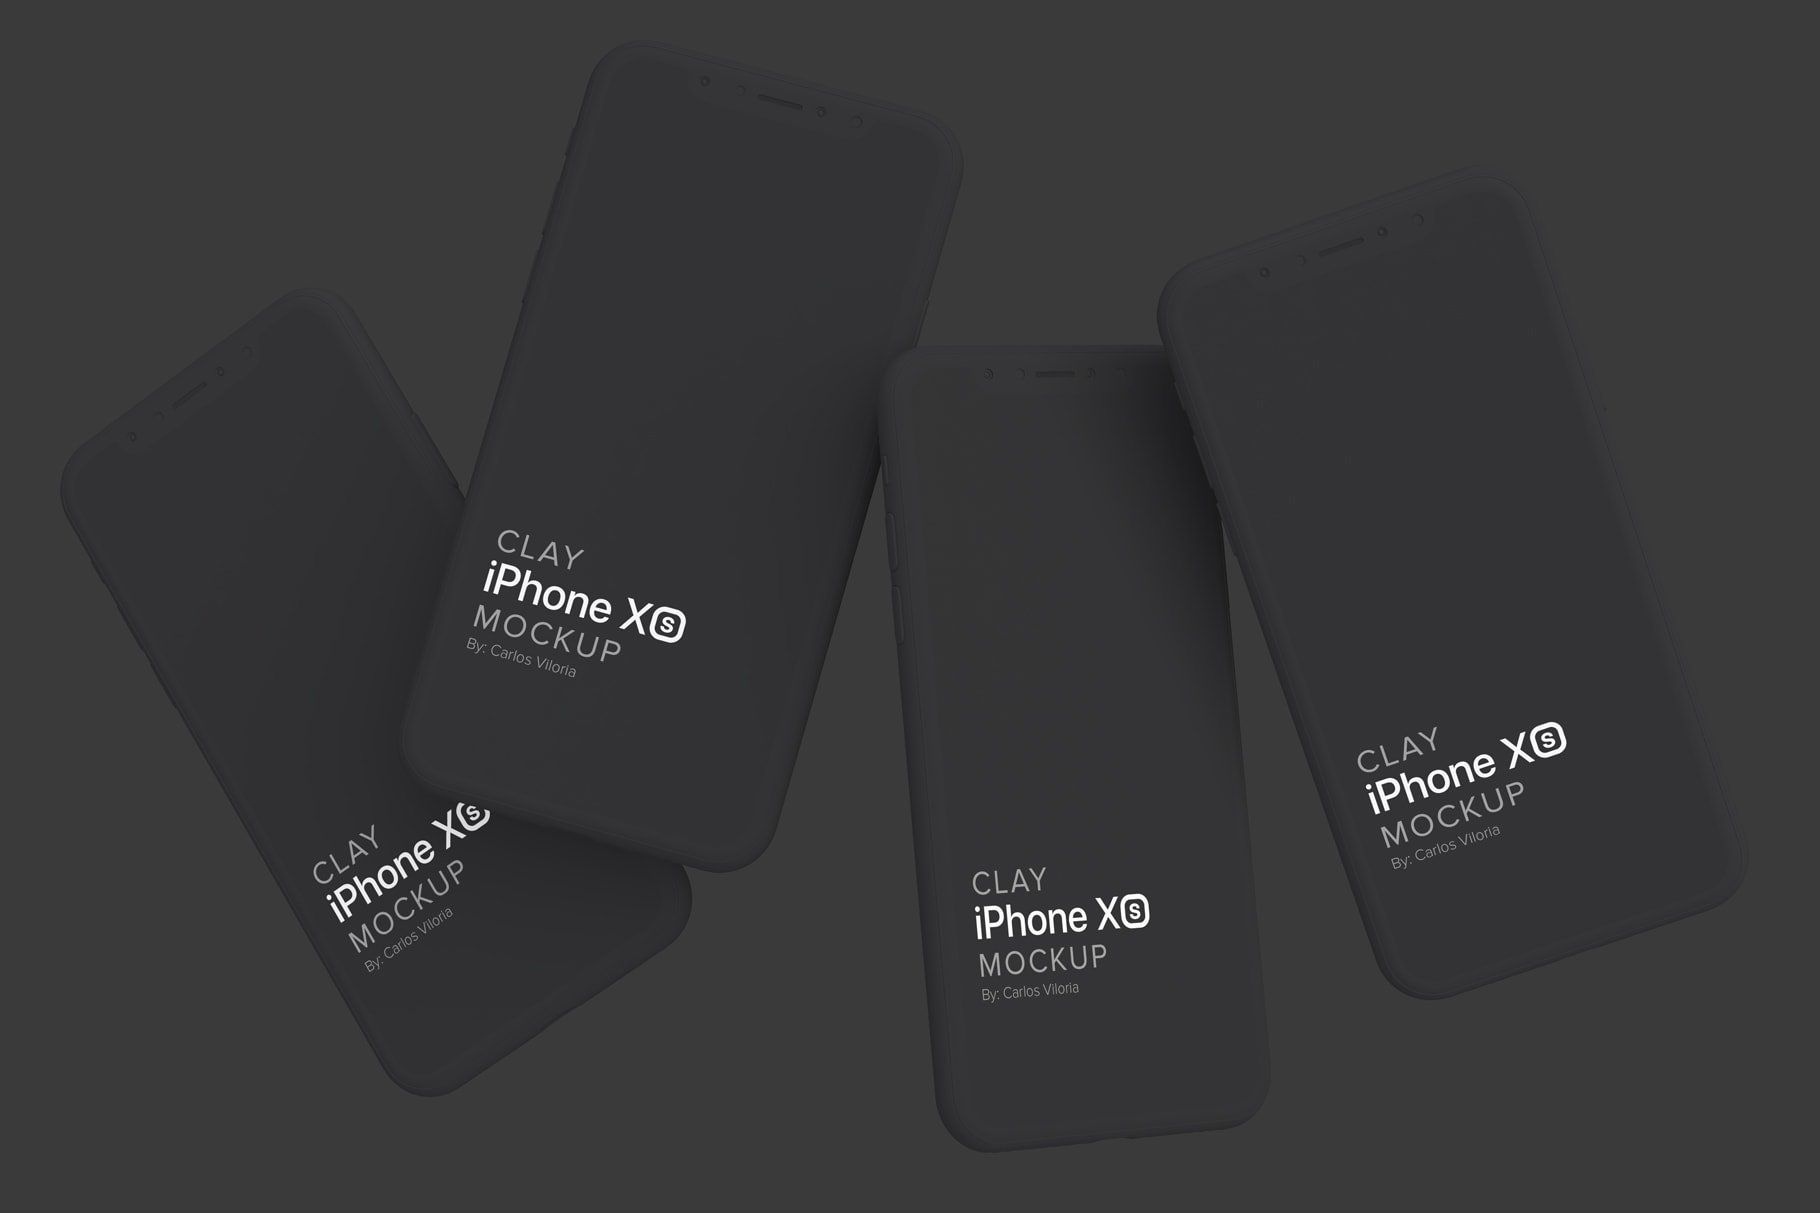 iPhone XS Mockup for Apps